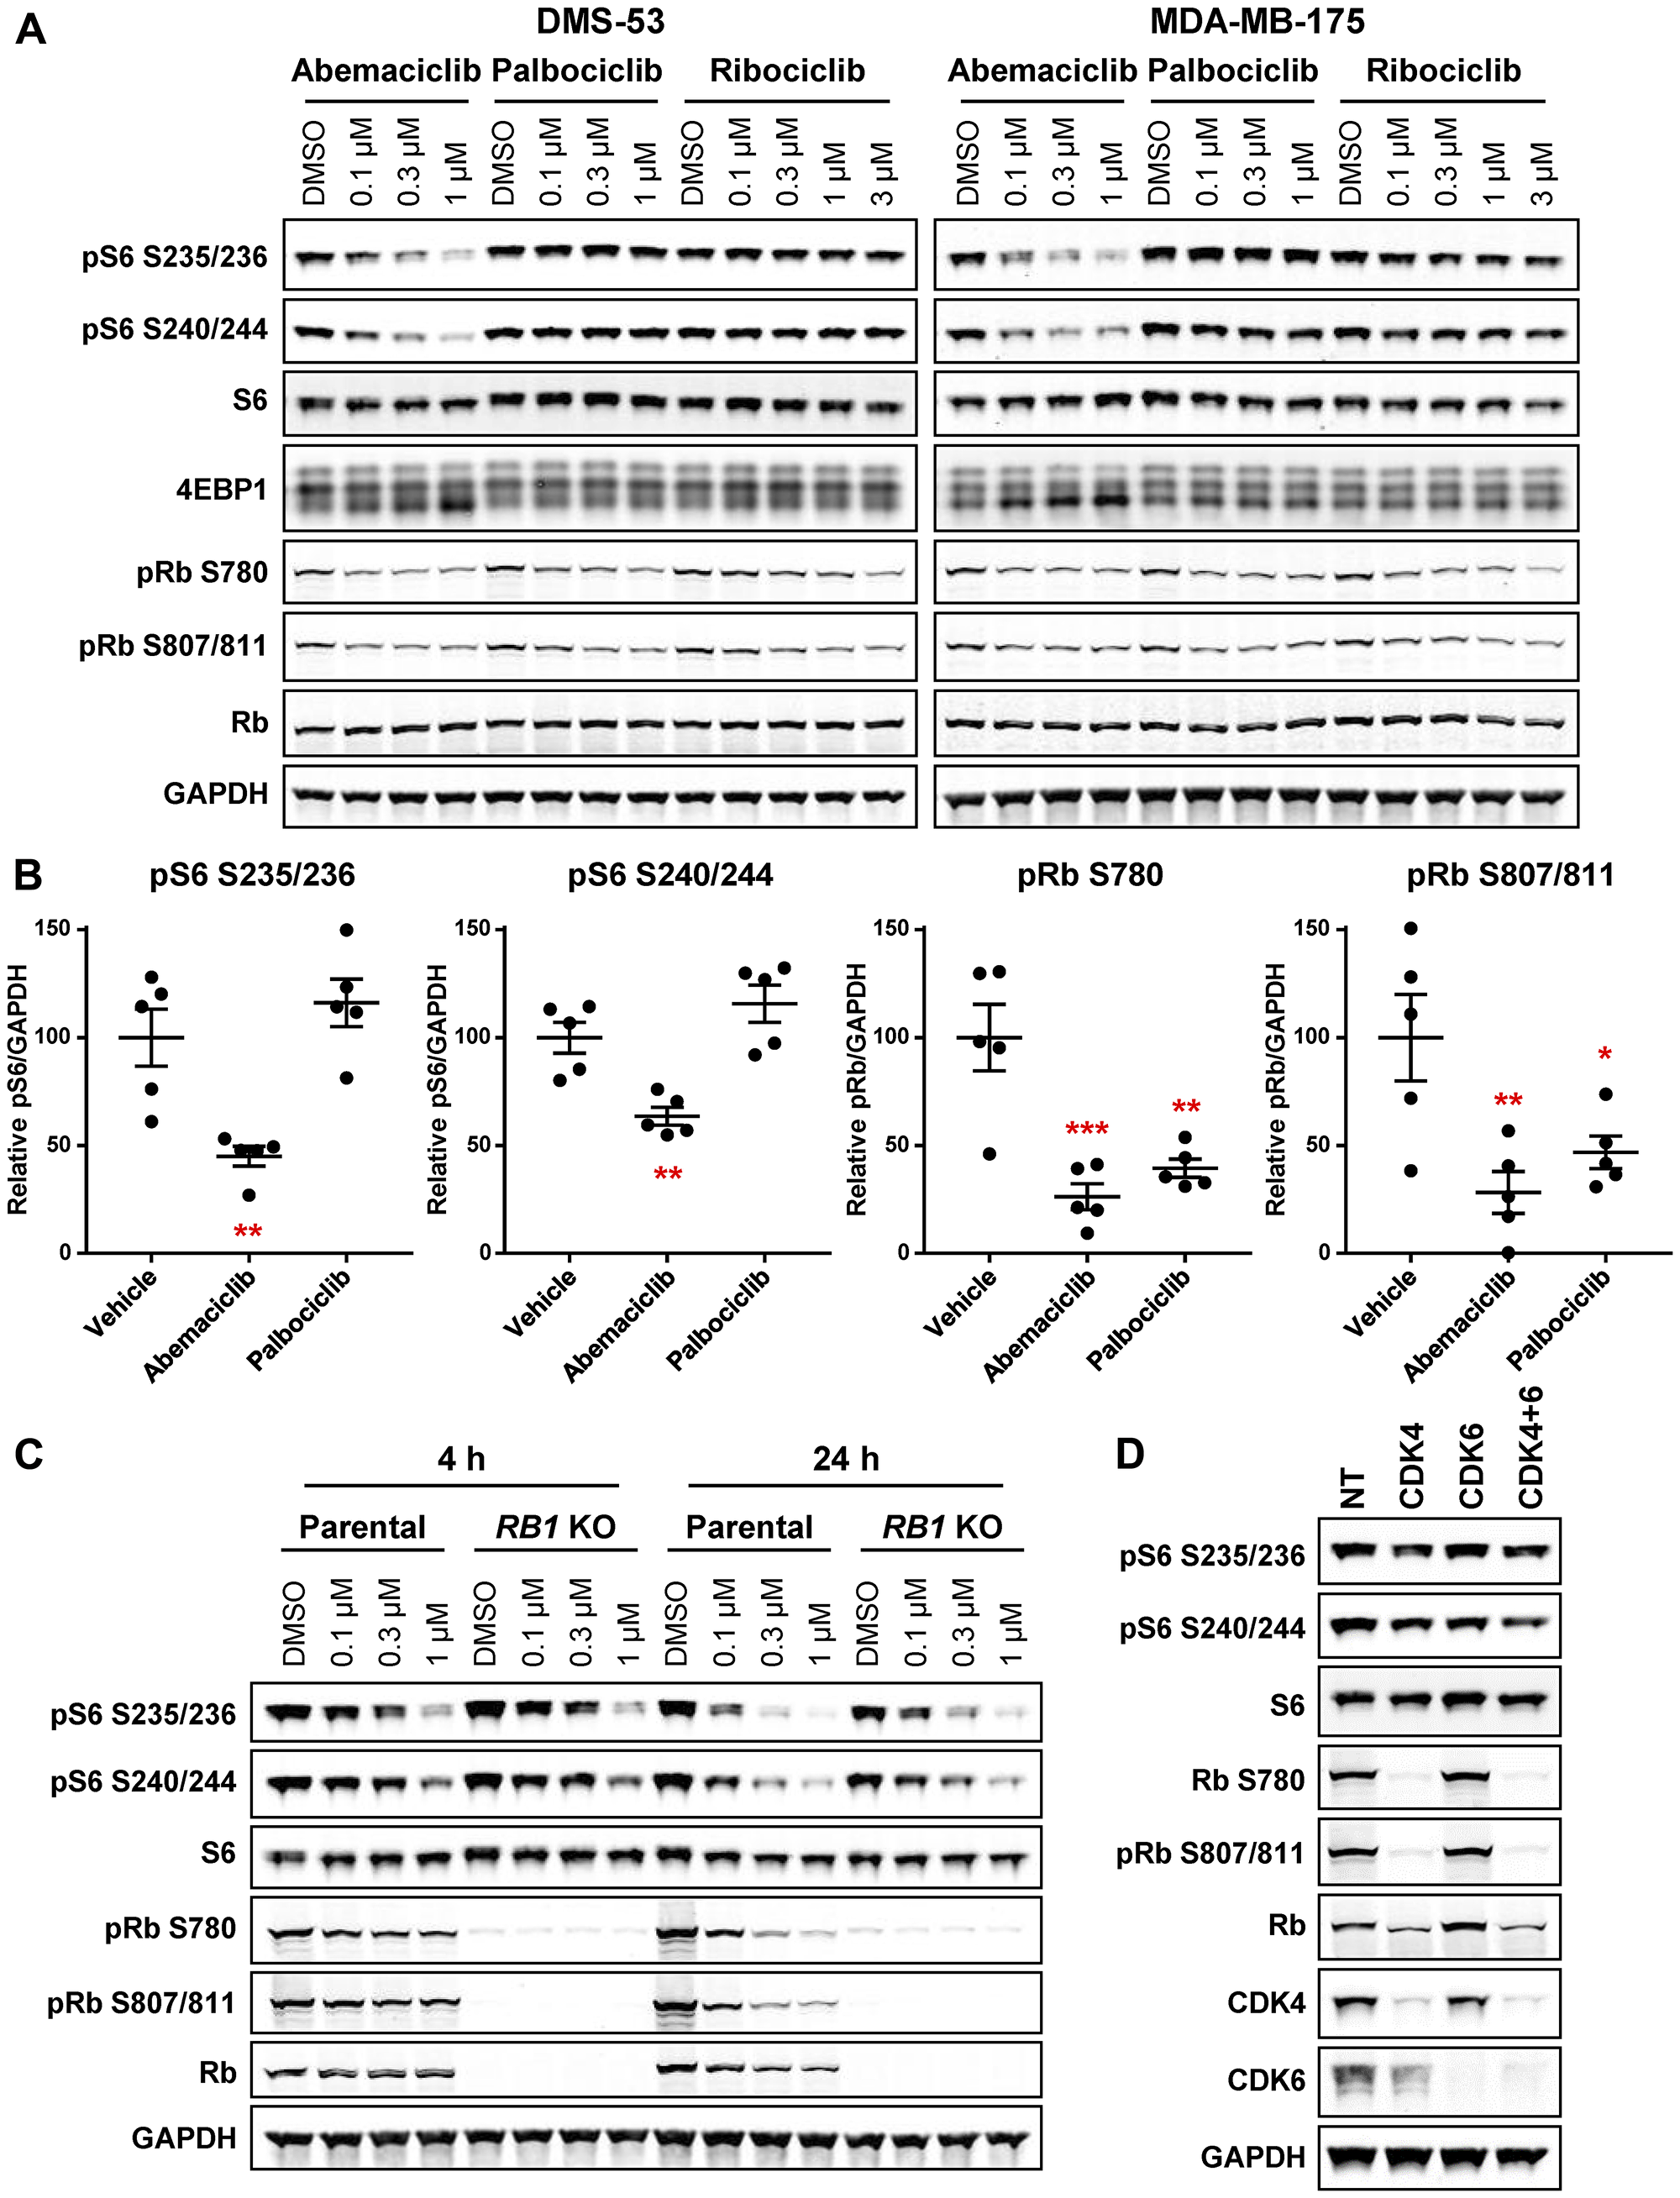 Abemaciclib inhibits S6 phosphorylation independent of effects on CDK4/6 and Rb.